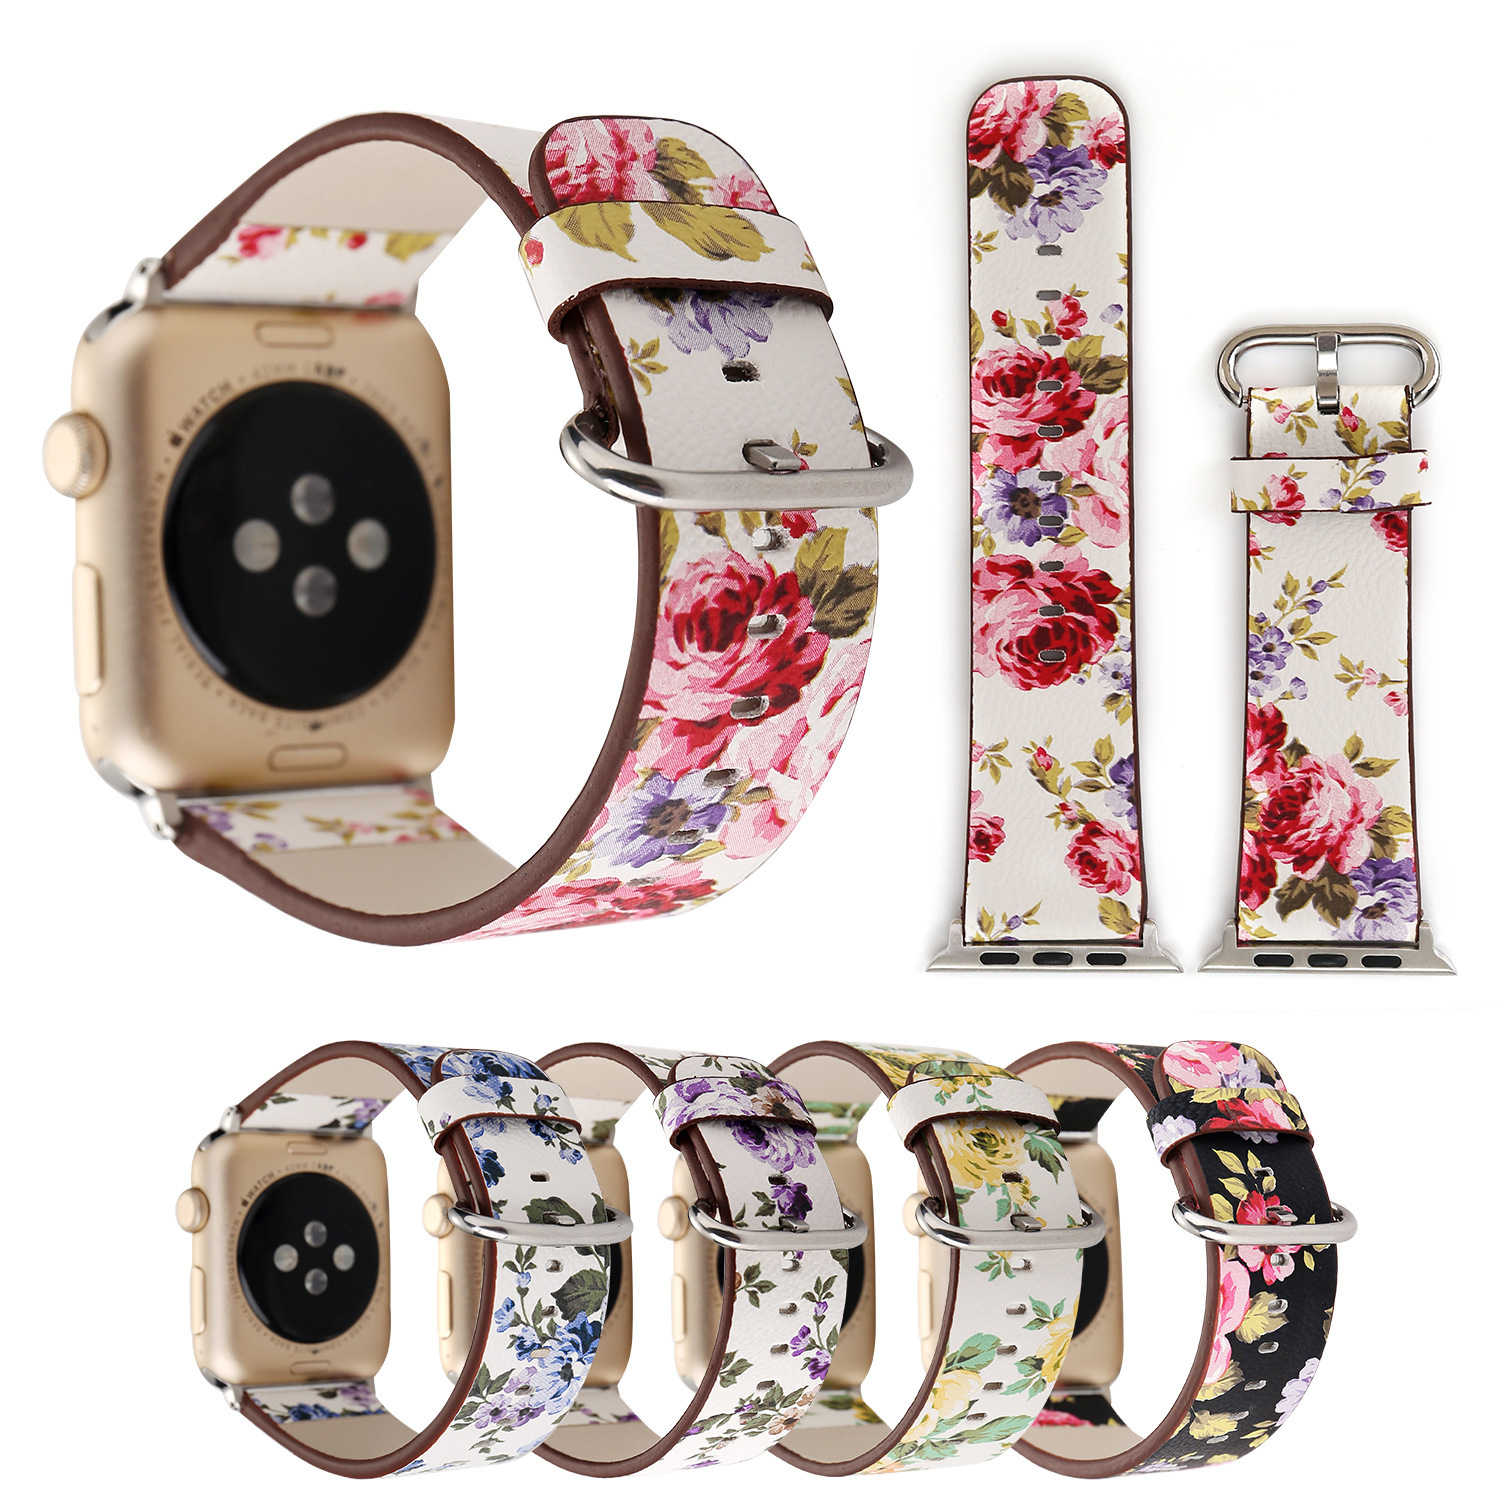 Suitable For Small Floral Apple Watch Strap APPLE Watch1234 Leather Watch Strap IWatch PU Strap